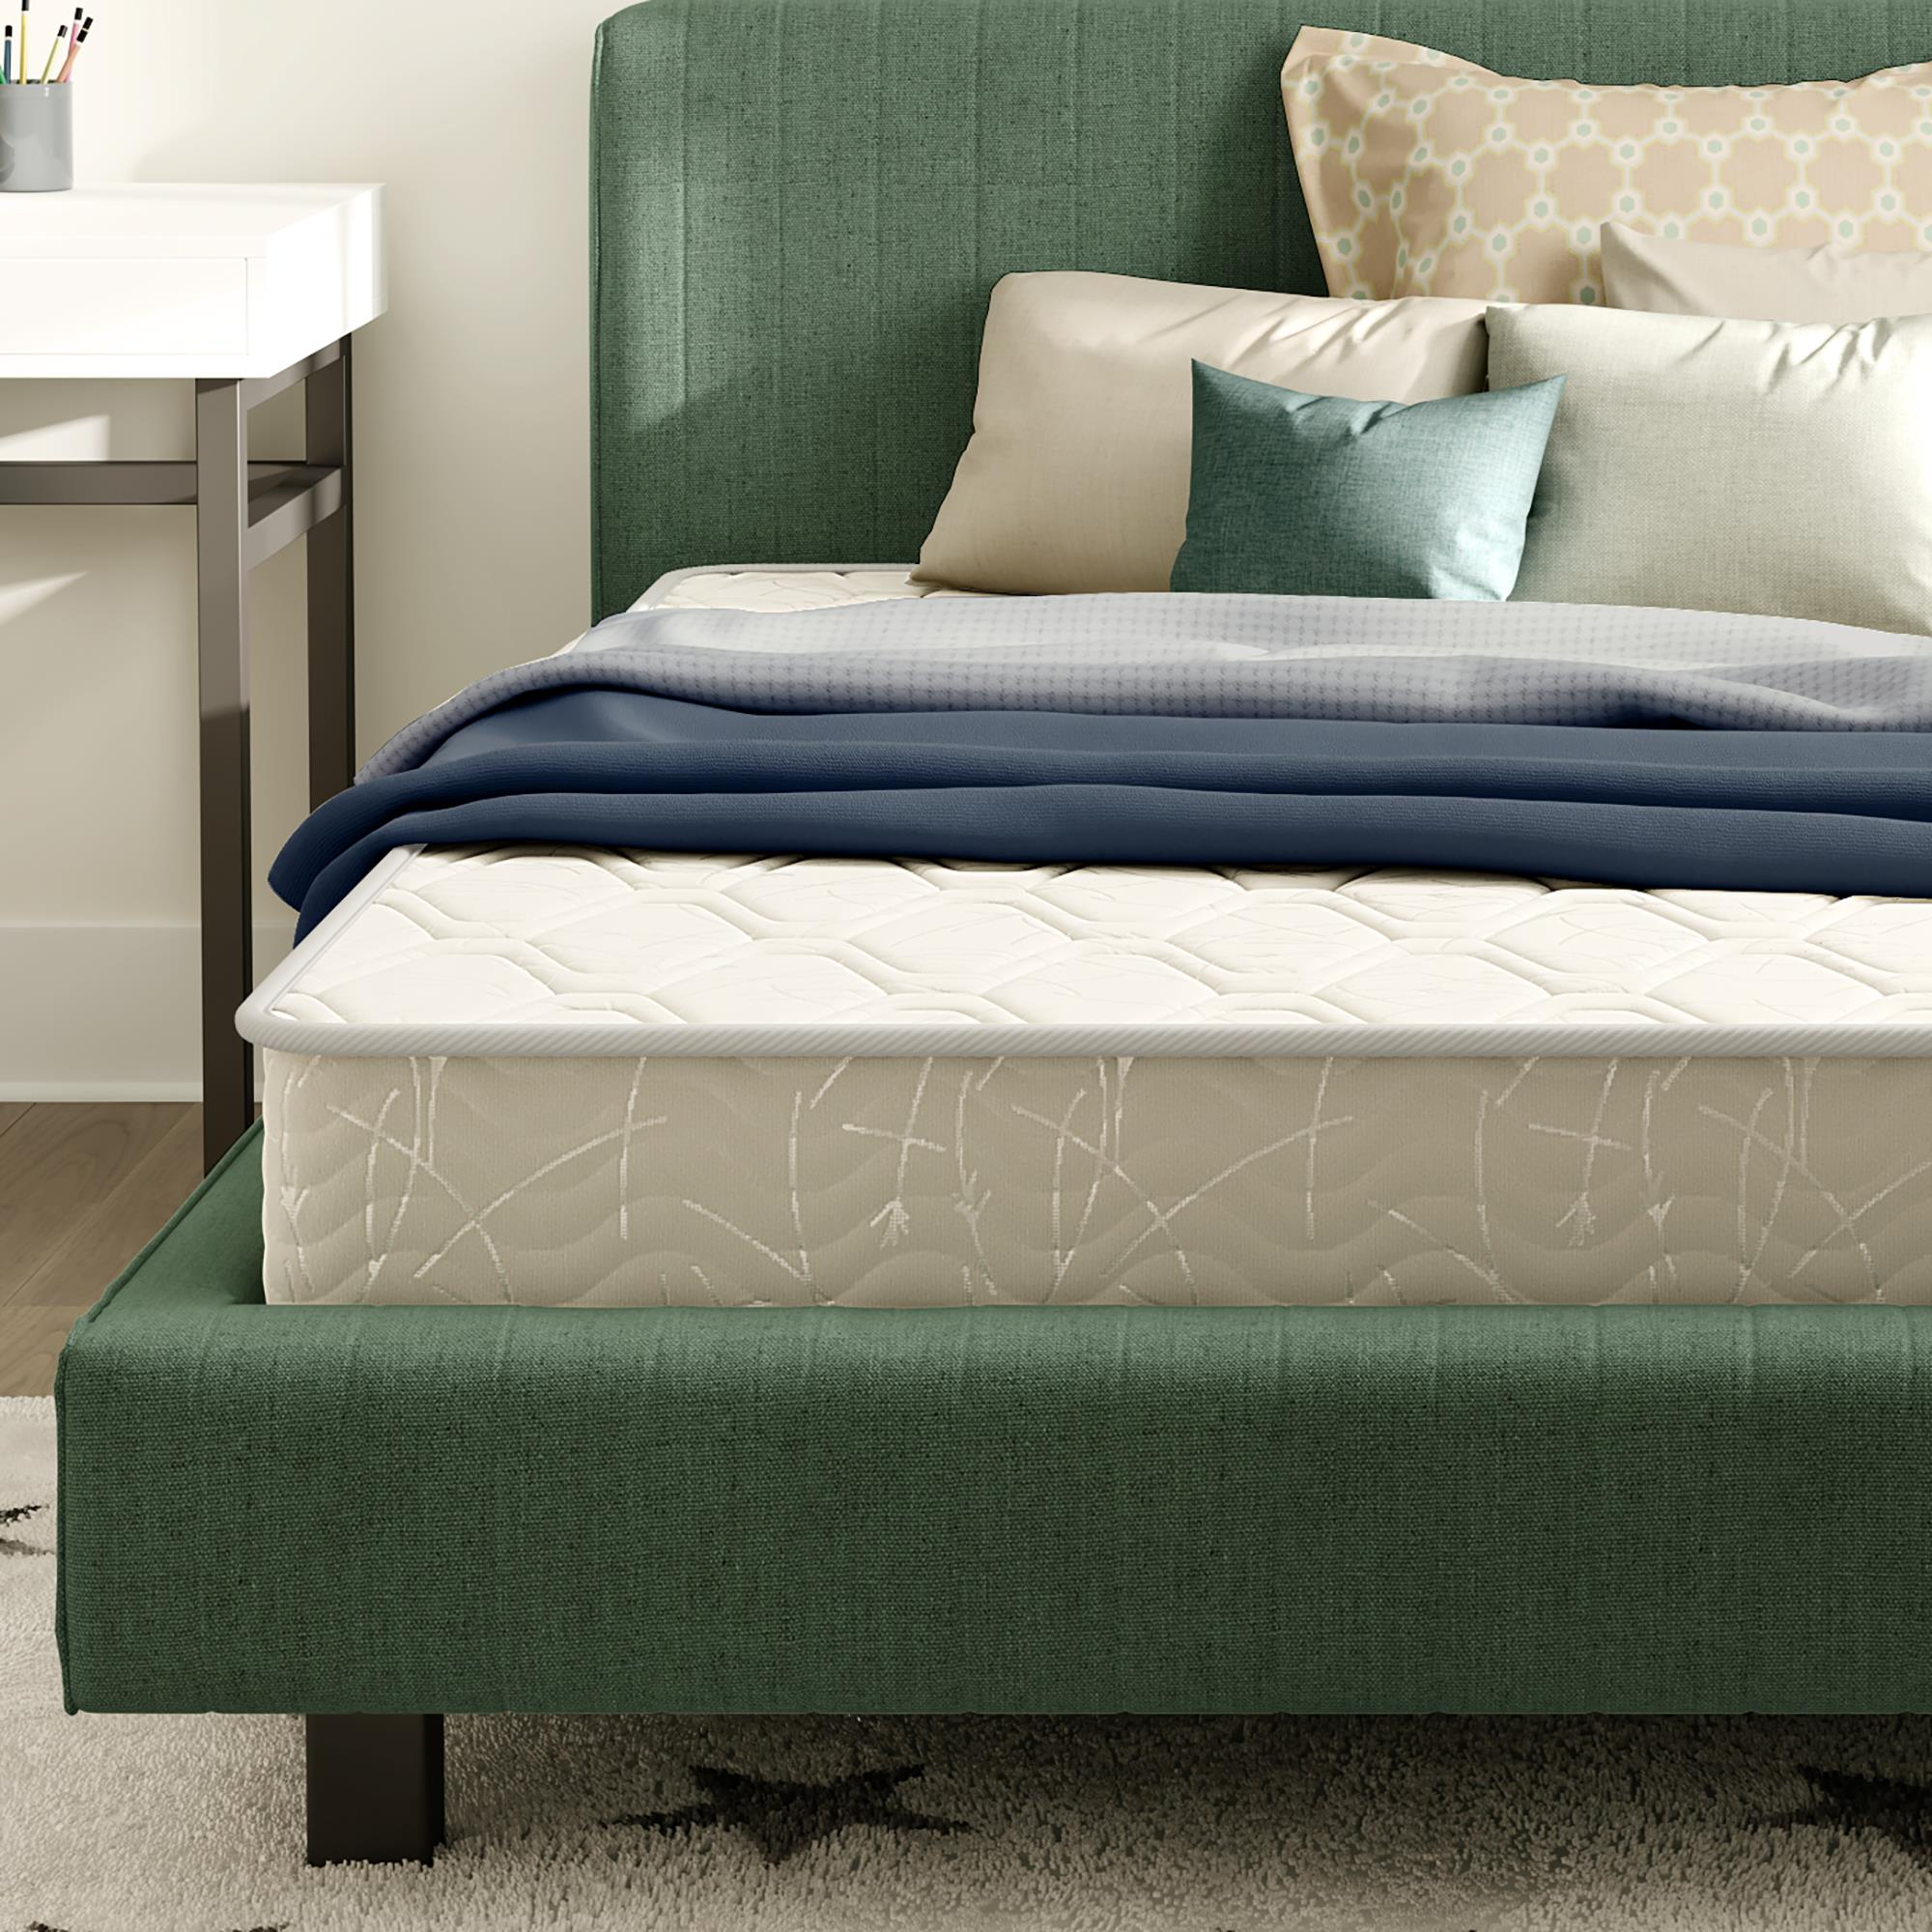 "Signature Sleep Gold Select 8"" Reversible Coil Mattress-in-a-Box"